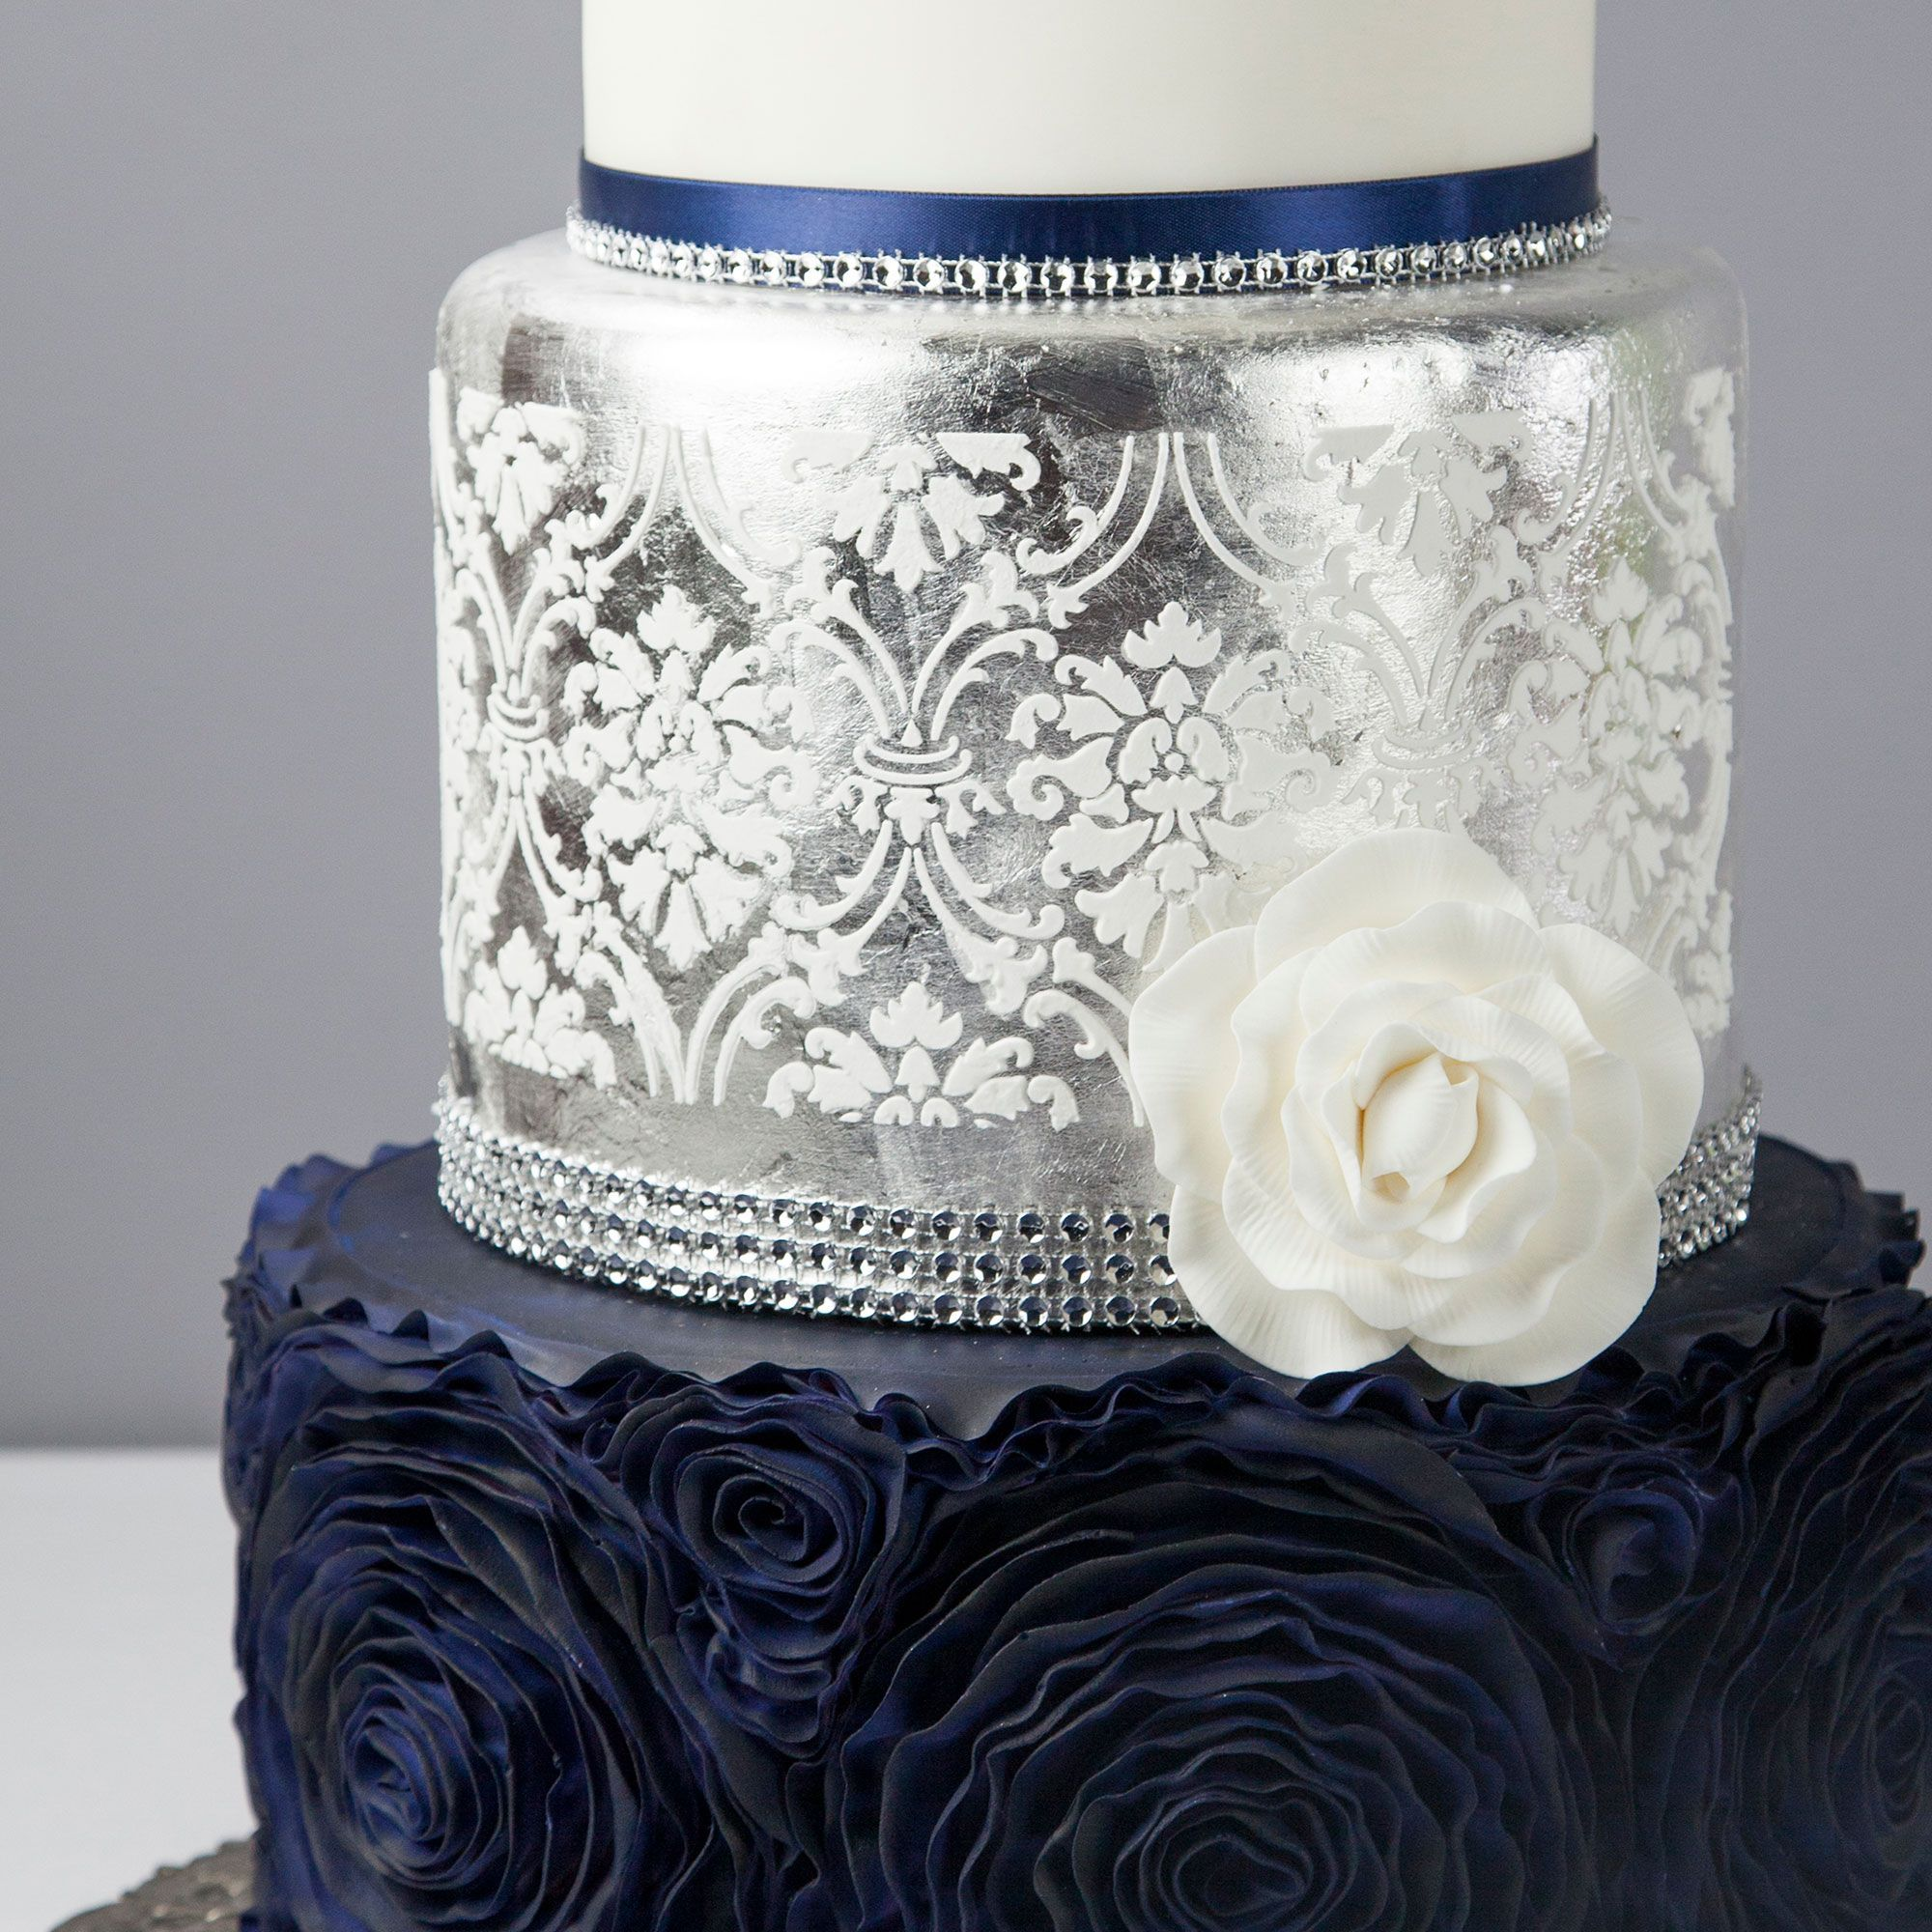 Follow us signaturebride on twitter and on facebook at signature